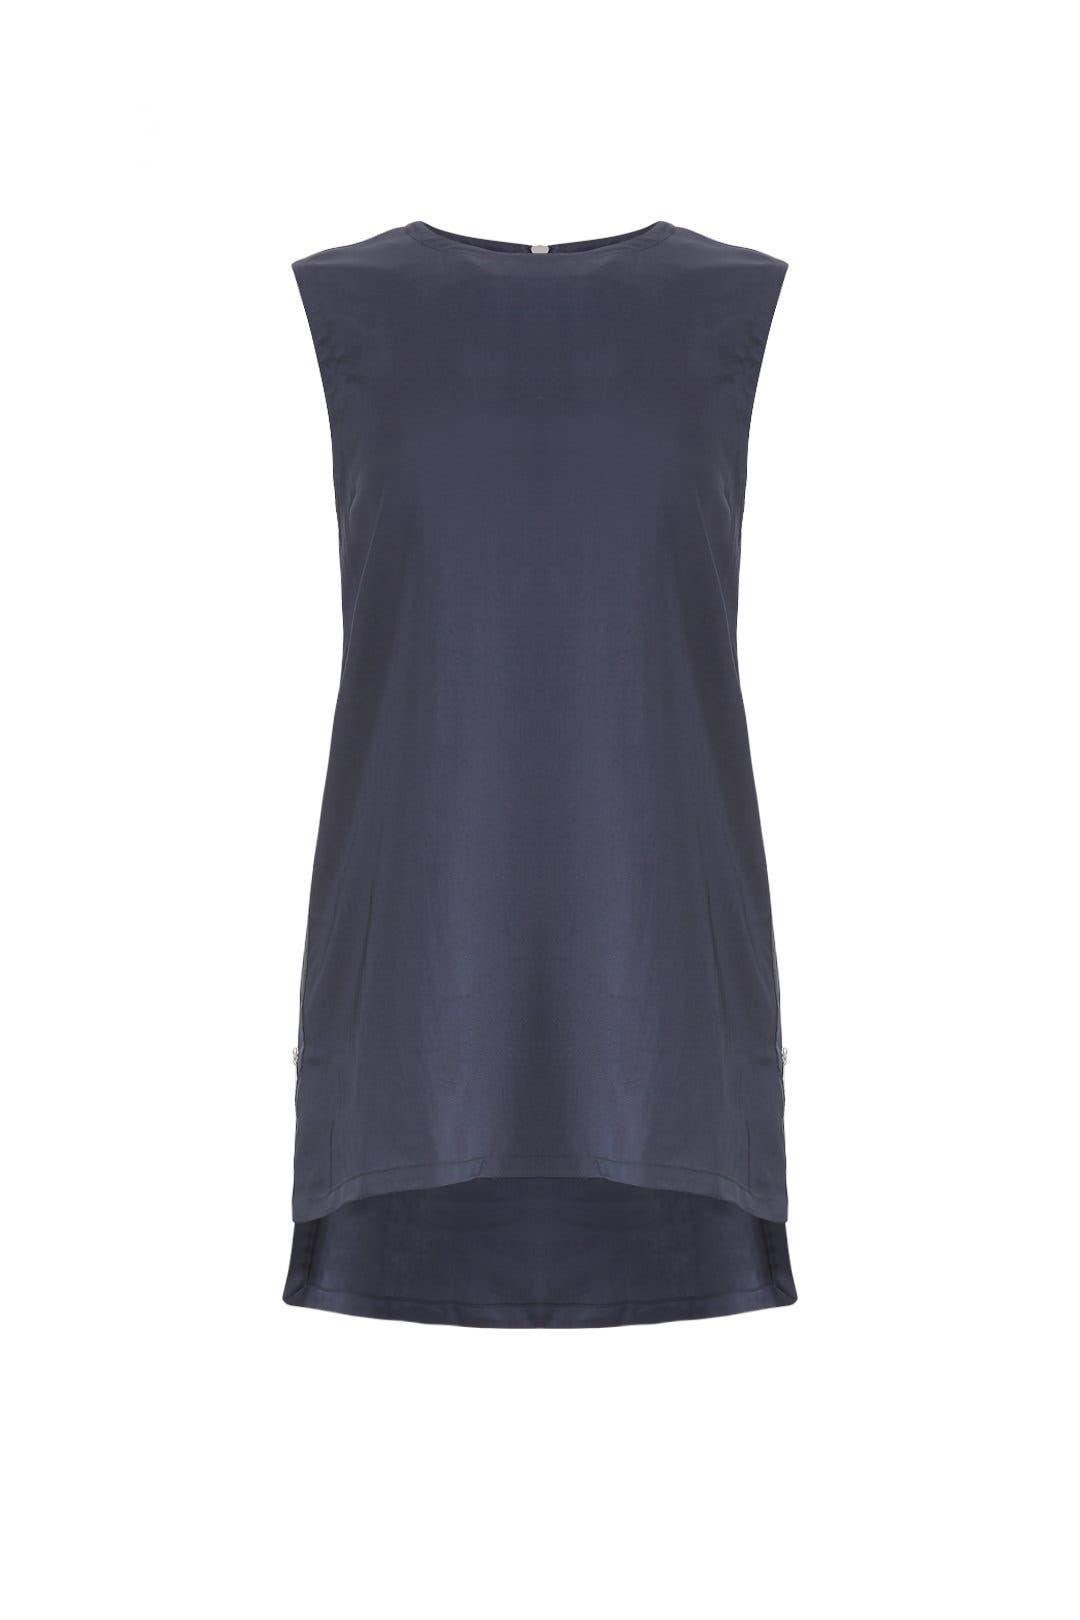 376238dc2dfbd9 Navy Sleeveless Tank by Victor Alfaro for $155 | Rent the Runway